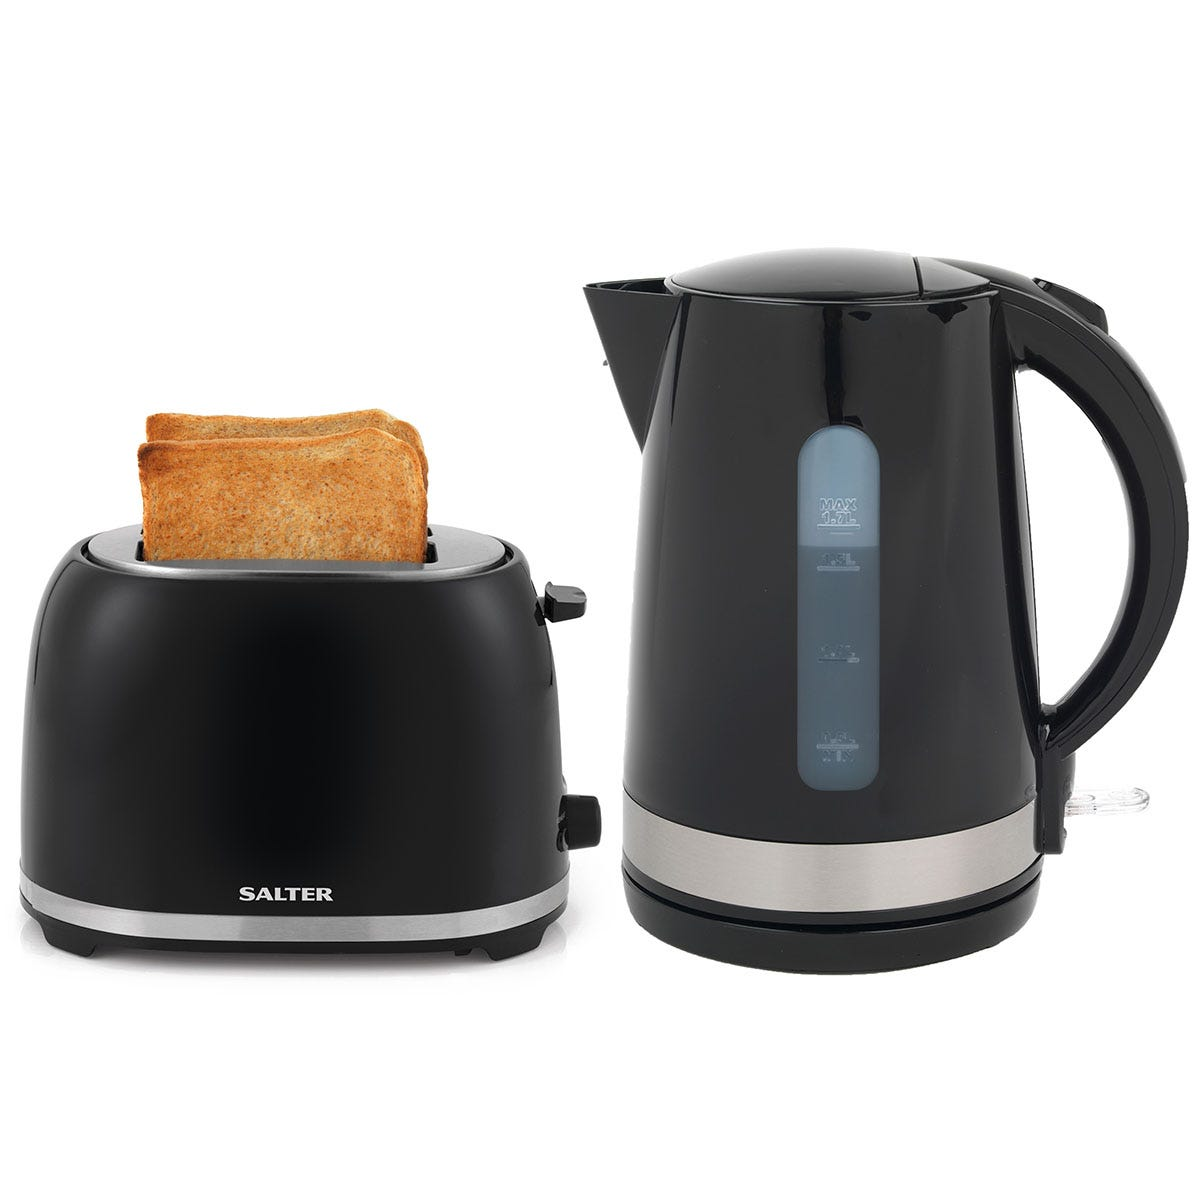 Salter Deco Collection 1.7L Kettle and 2-Slice Cool-Touch Toaster Set - Black and Stainless Steel